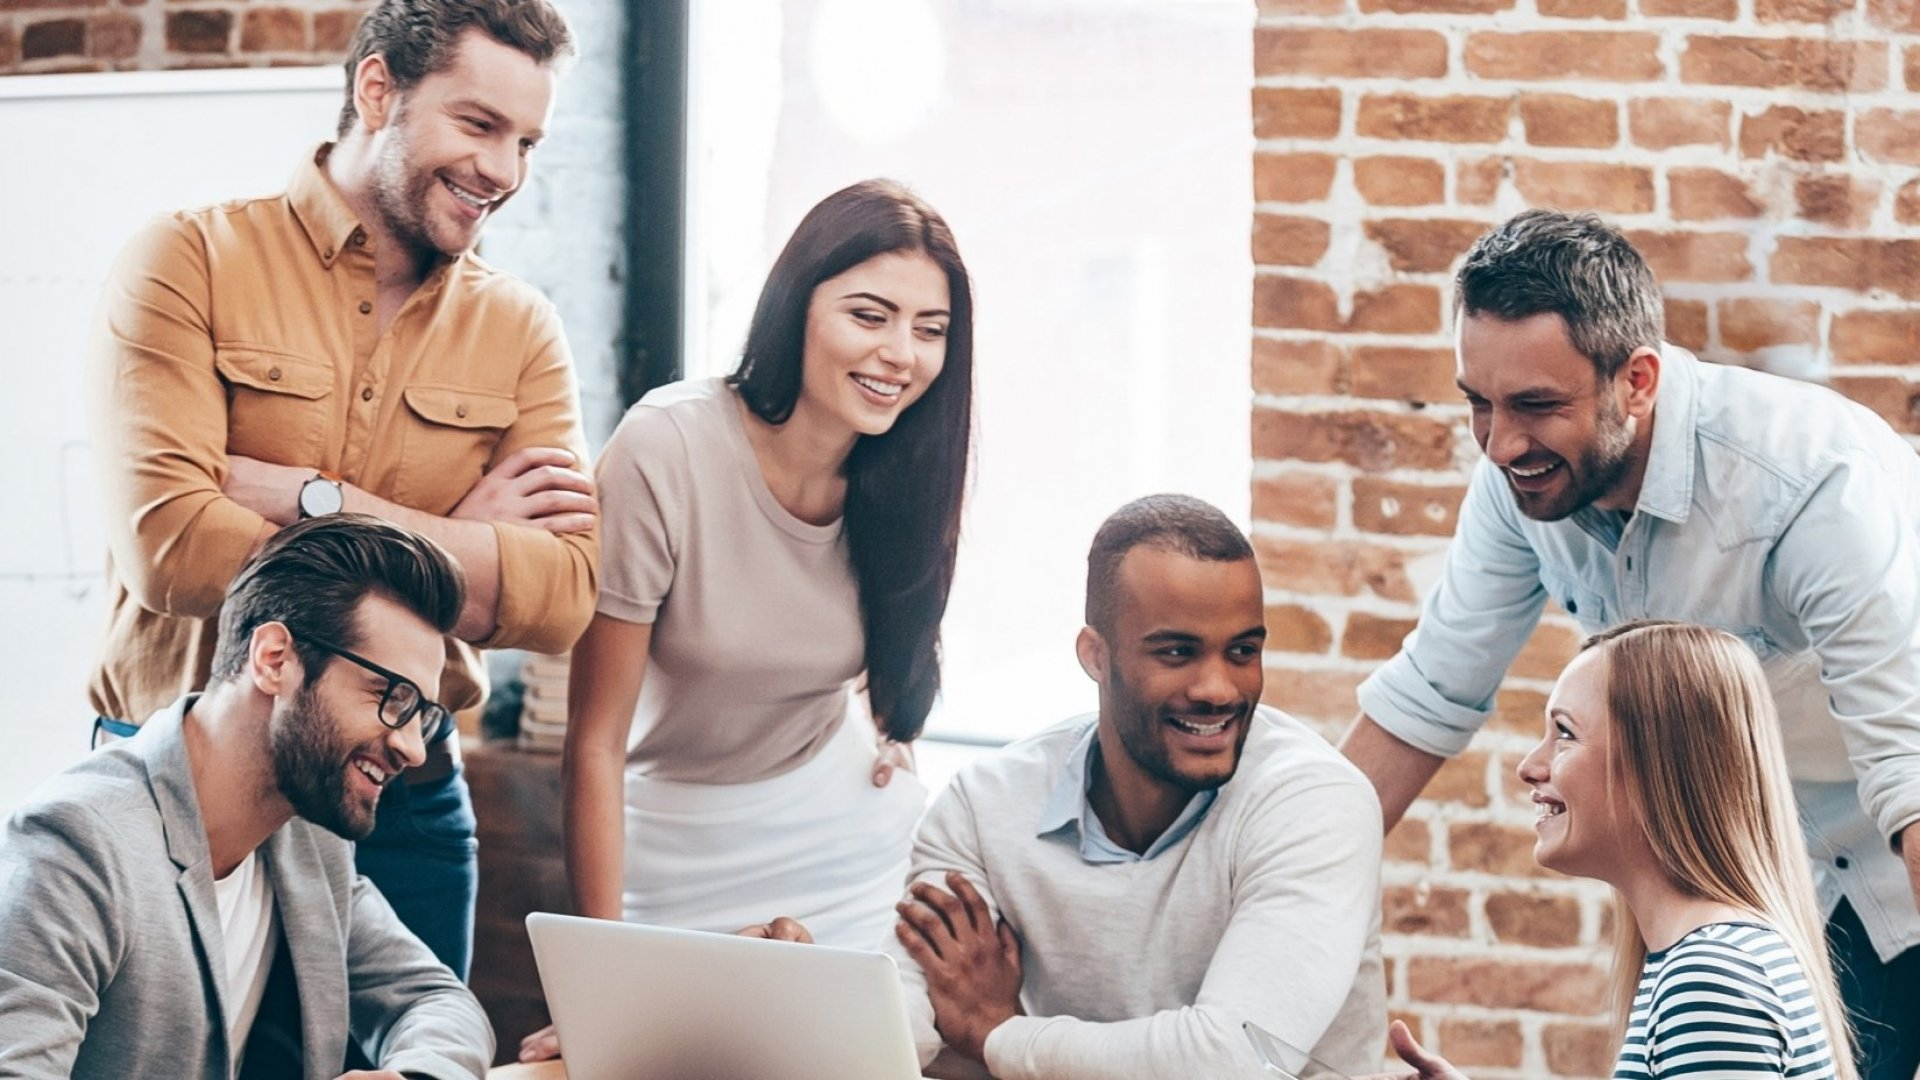 Five steps to promote a positive work culture